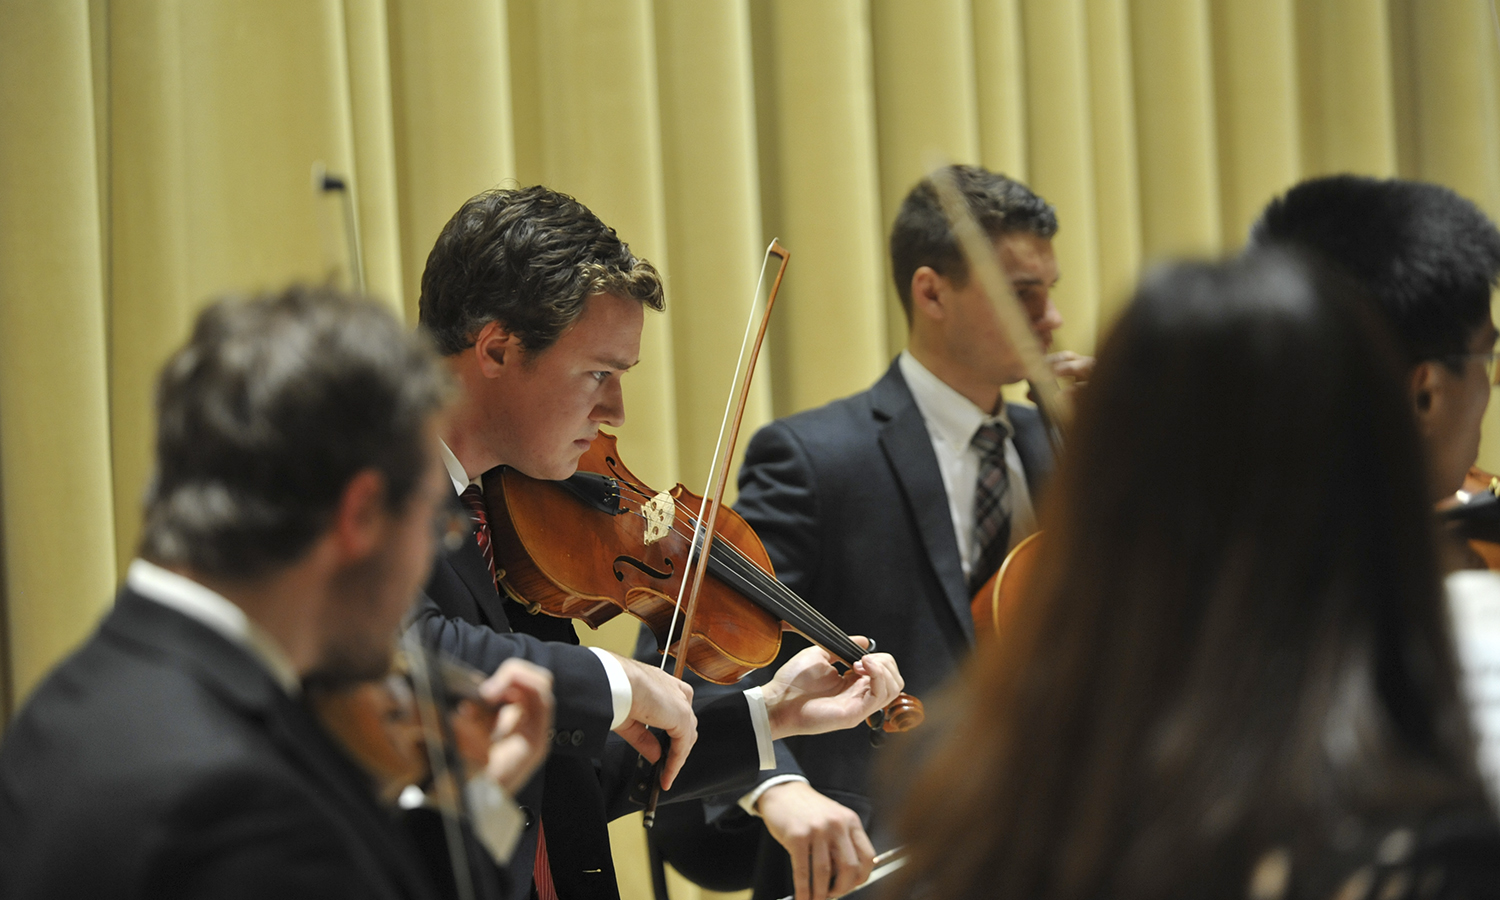 Dan Klementowski '17 plays the violin during the HWS String Ensemble concert in Froelich Hall of the Gearan Center for the Performing Arts on Wednesday.